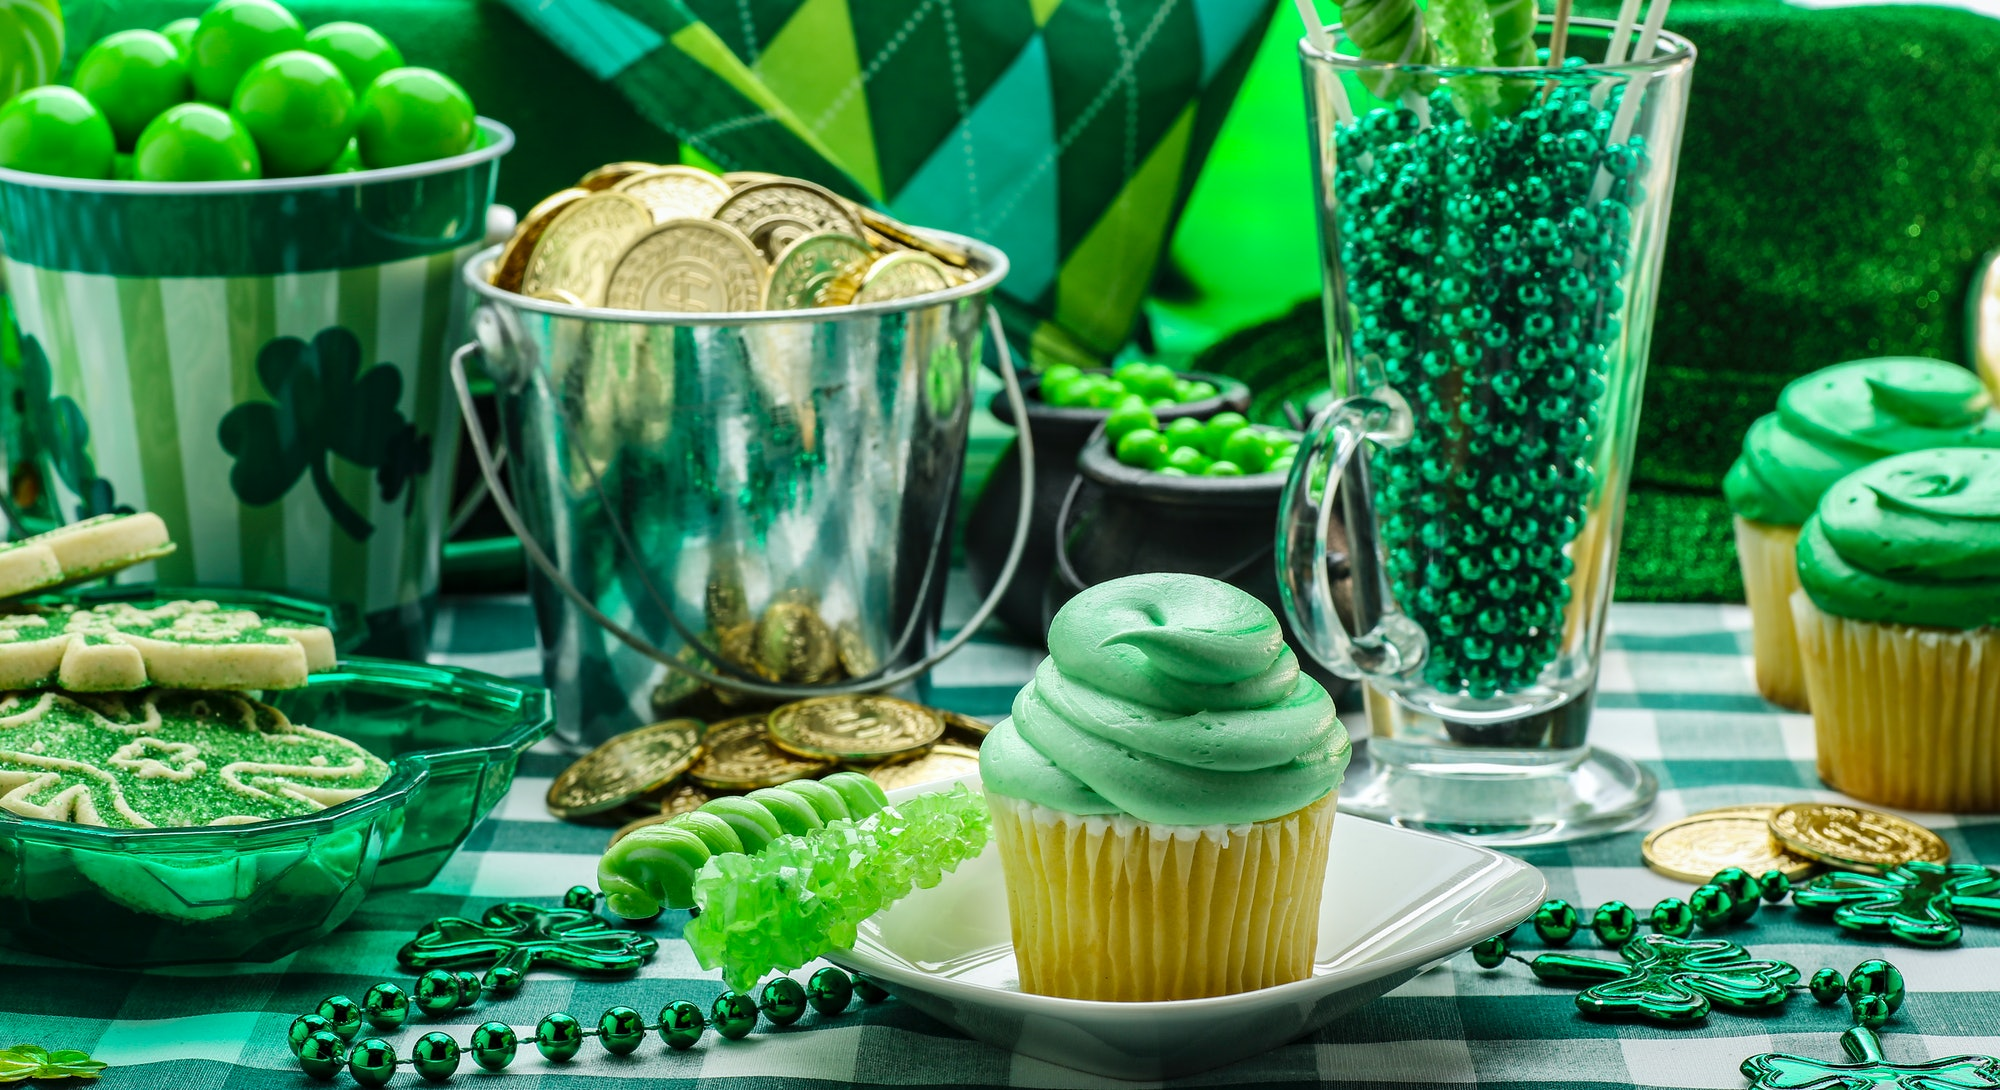 Sweet green treats for St. Patrick's Day are a great way to celebrate.